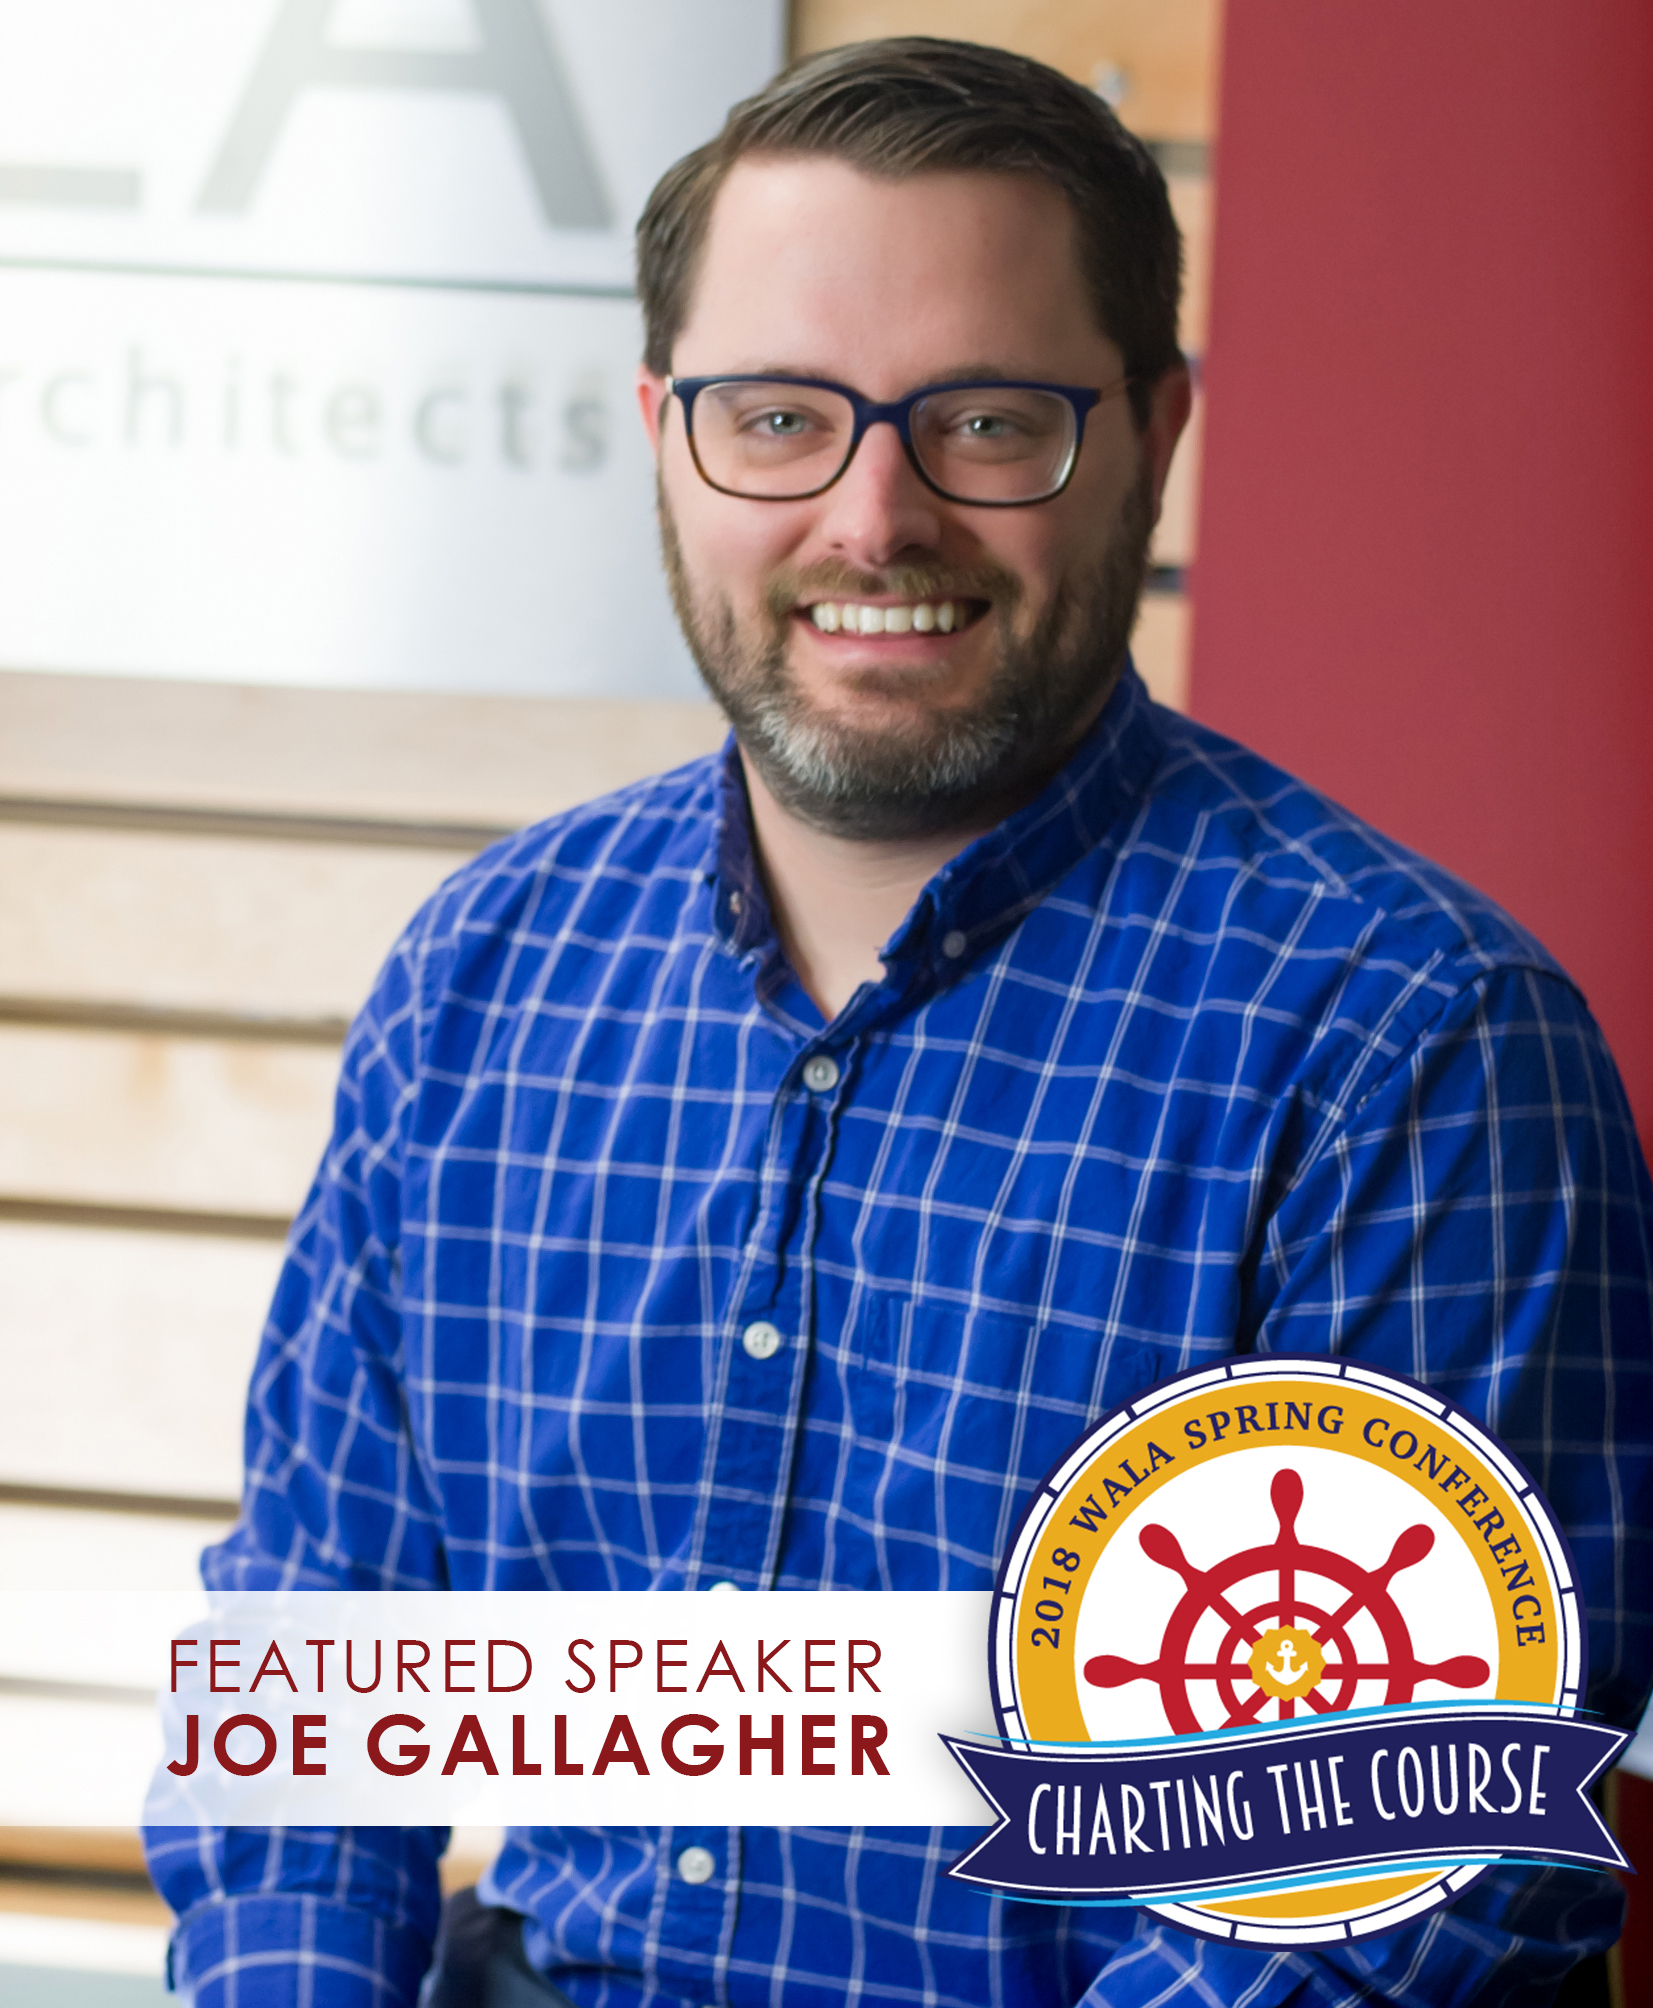 JOE GALLAGHER, FEATURED SPEAKER AT WALA